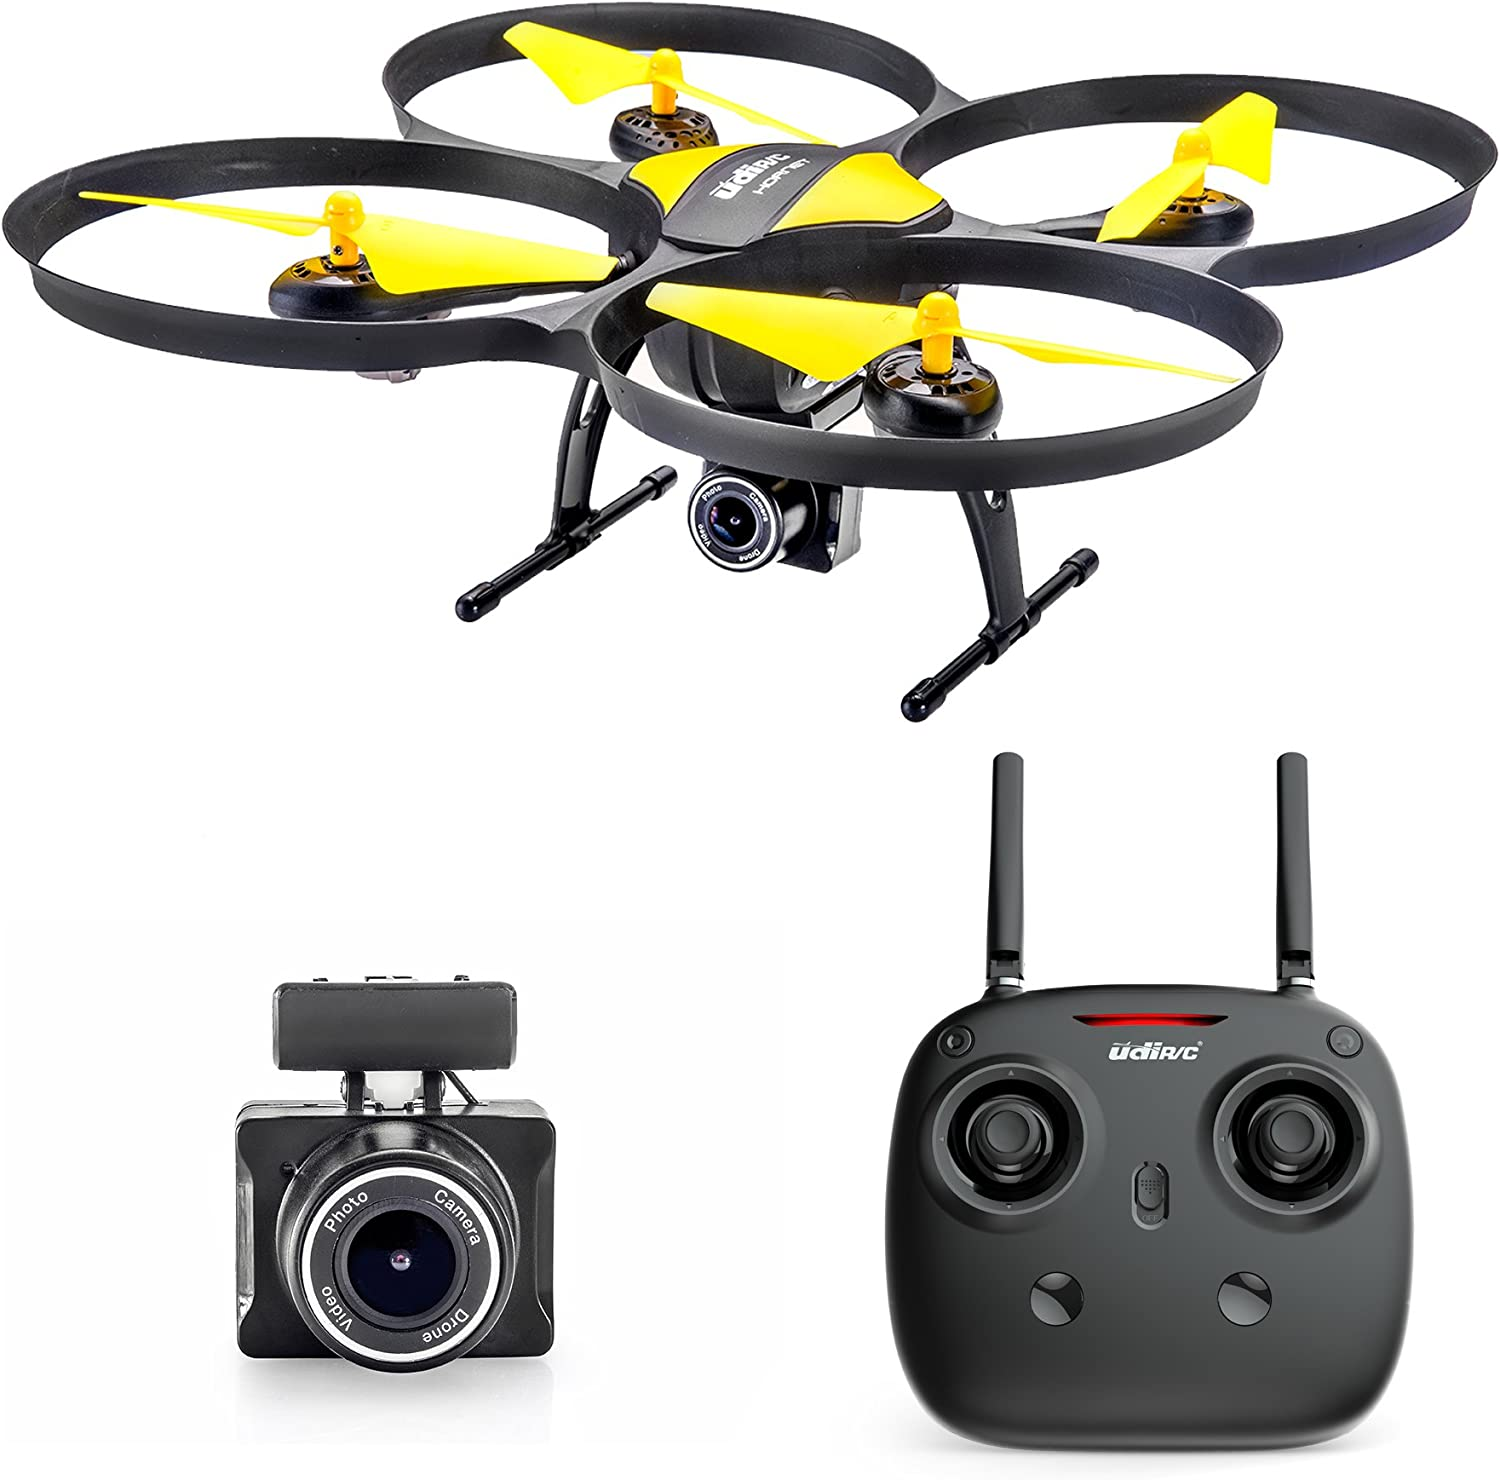 Altair 818 Hornet Beginner Drone with Camera   Free Priority Shipping   Live Video Drone for Kids & Adults, 15 Min Flight Time, Altitude Hold, Personal Hobby Starter RC Quadcopter for All Ages